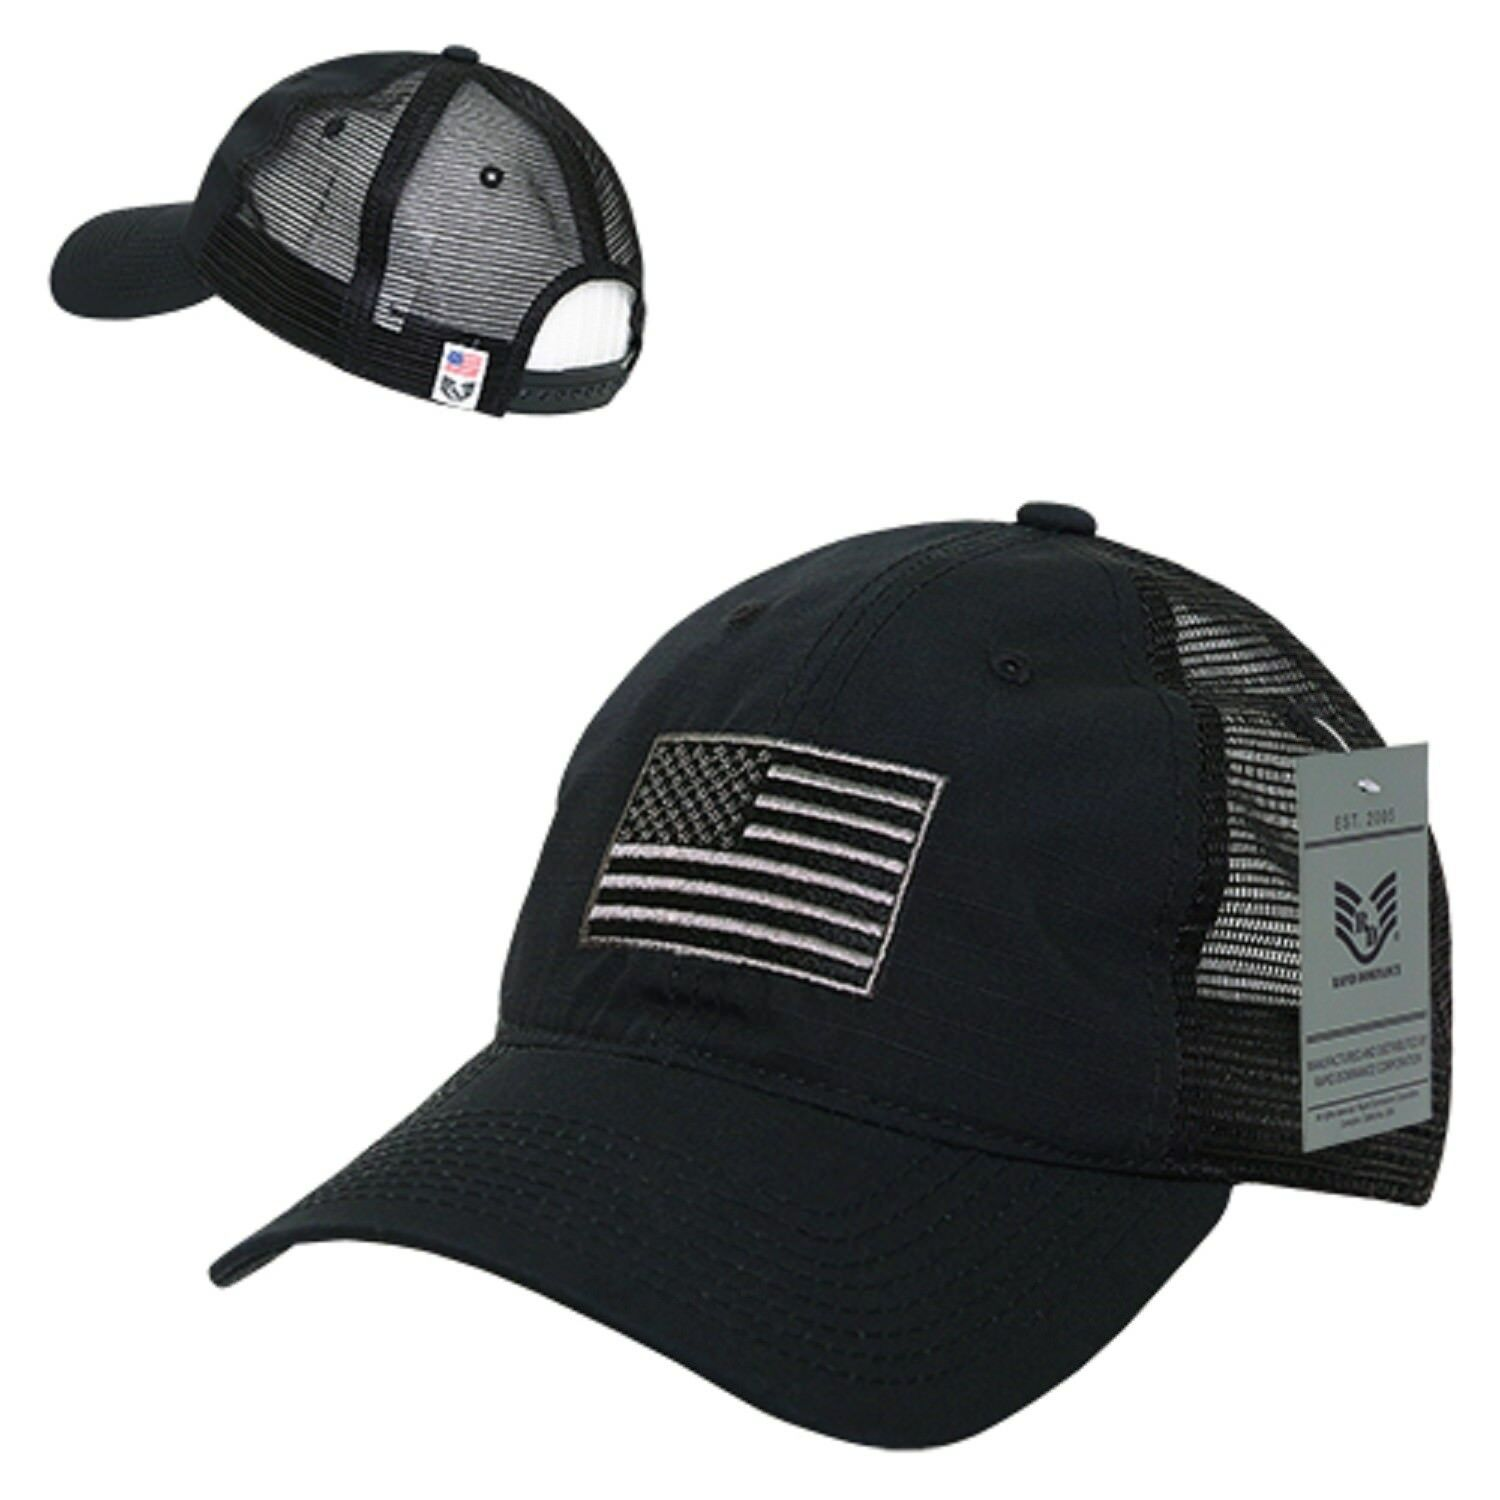 Details about Black USA US United States Flag America Ripstop Mesh Trucker  Baseball Hat Cap